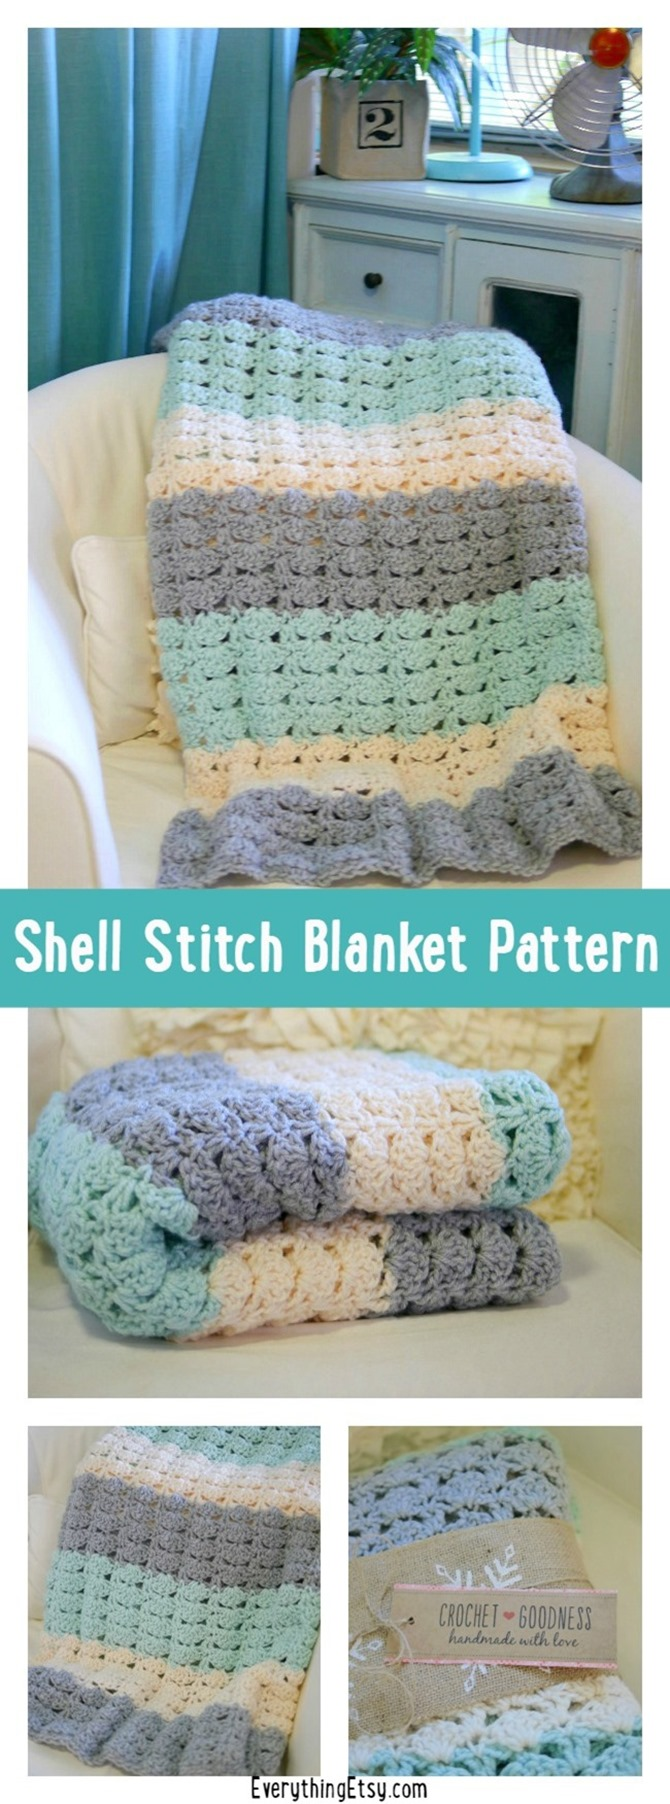 free crochet blanket pattern - shell stitch